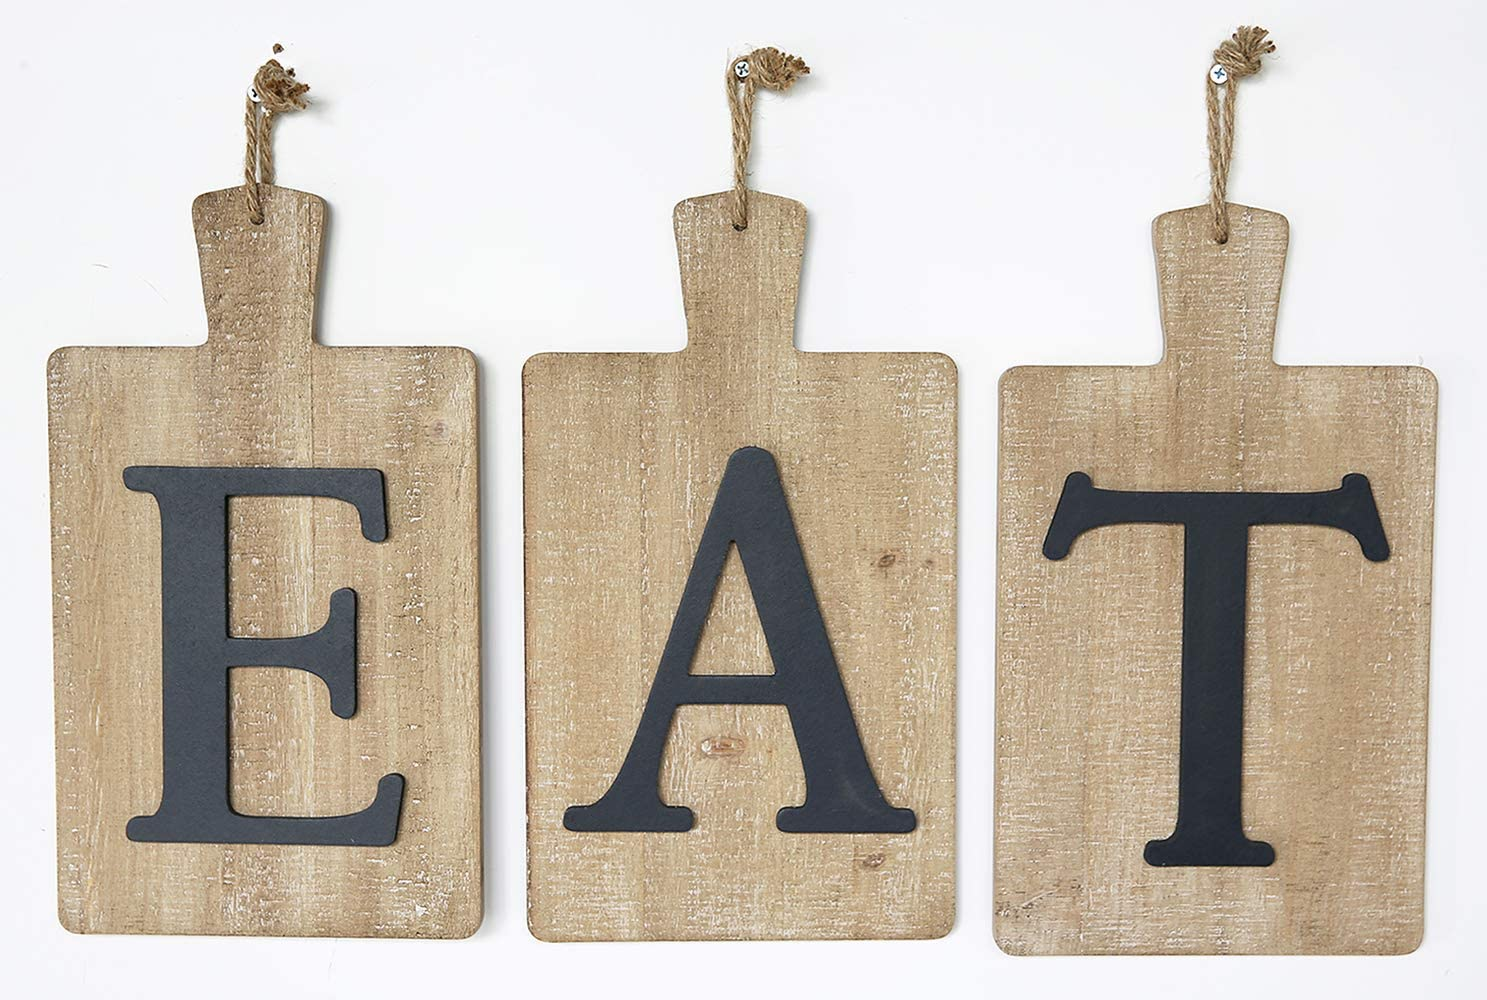 Karisky Eat Letter Signs 3-Pack 13 x 8 inches Rustic Wood Decorative Cutting Board Wall Hanging Art for Kitchen, Dining Room, Home Farmhouse Decor Brown